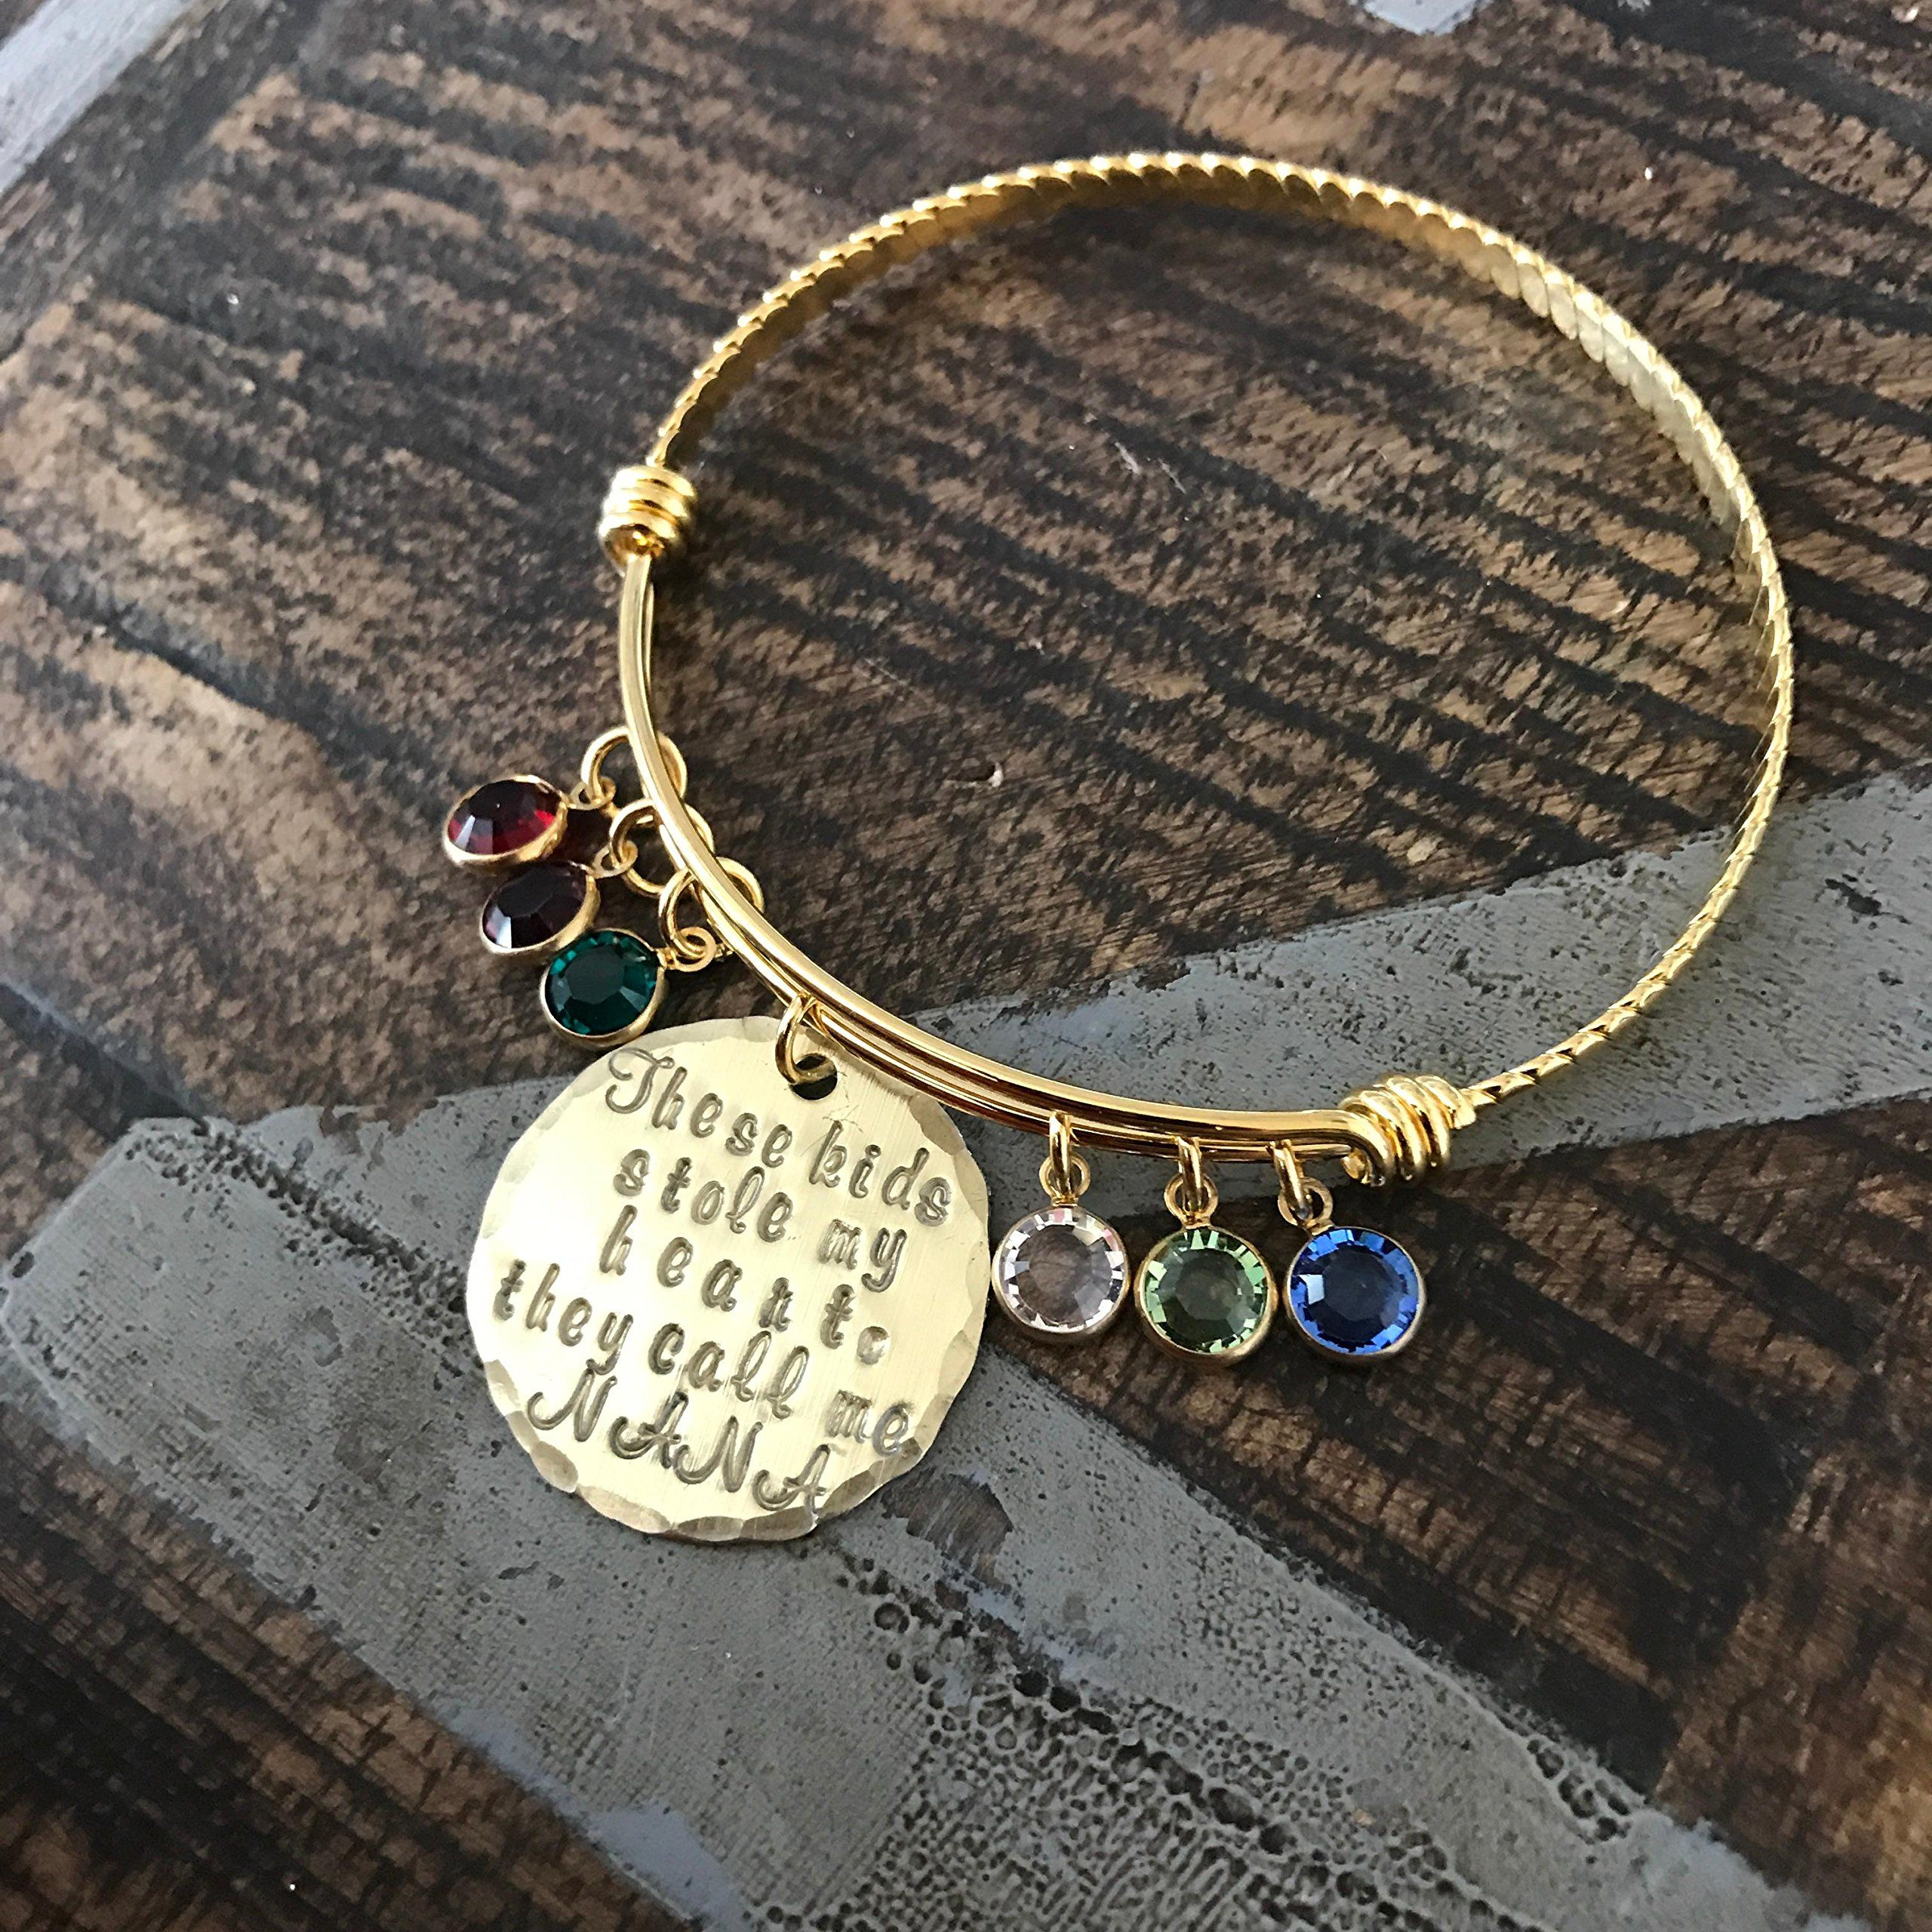 custom bangle s crdl braceletgold bracelet fullxfull mother silver gold new day listing gift mom charm birthstone jewelry il